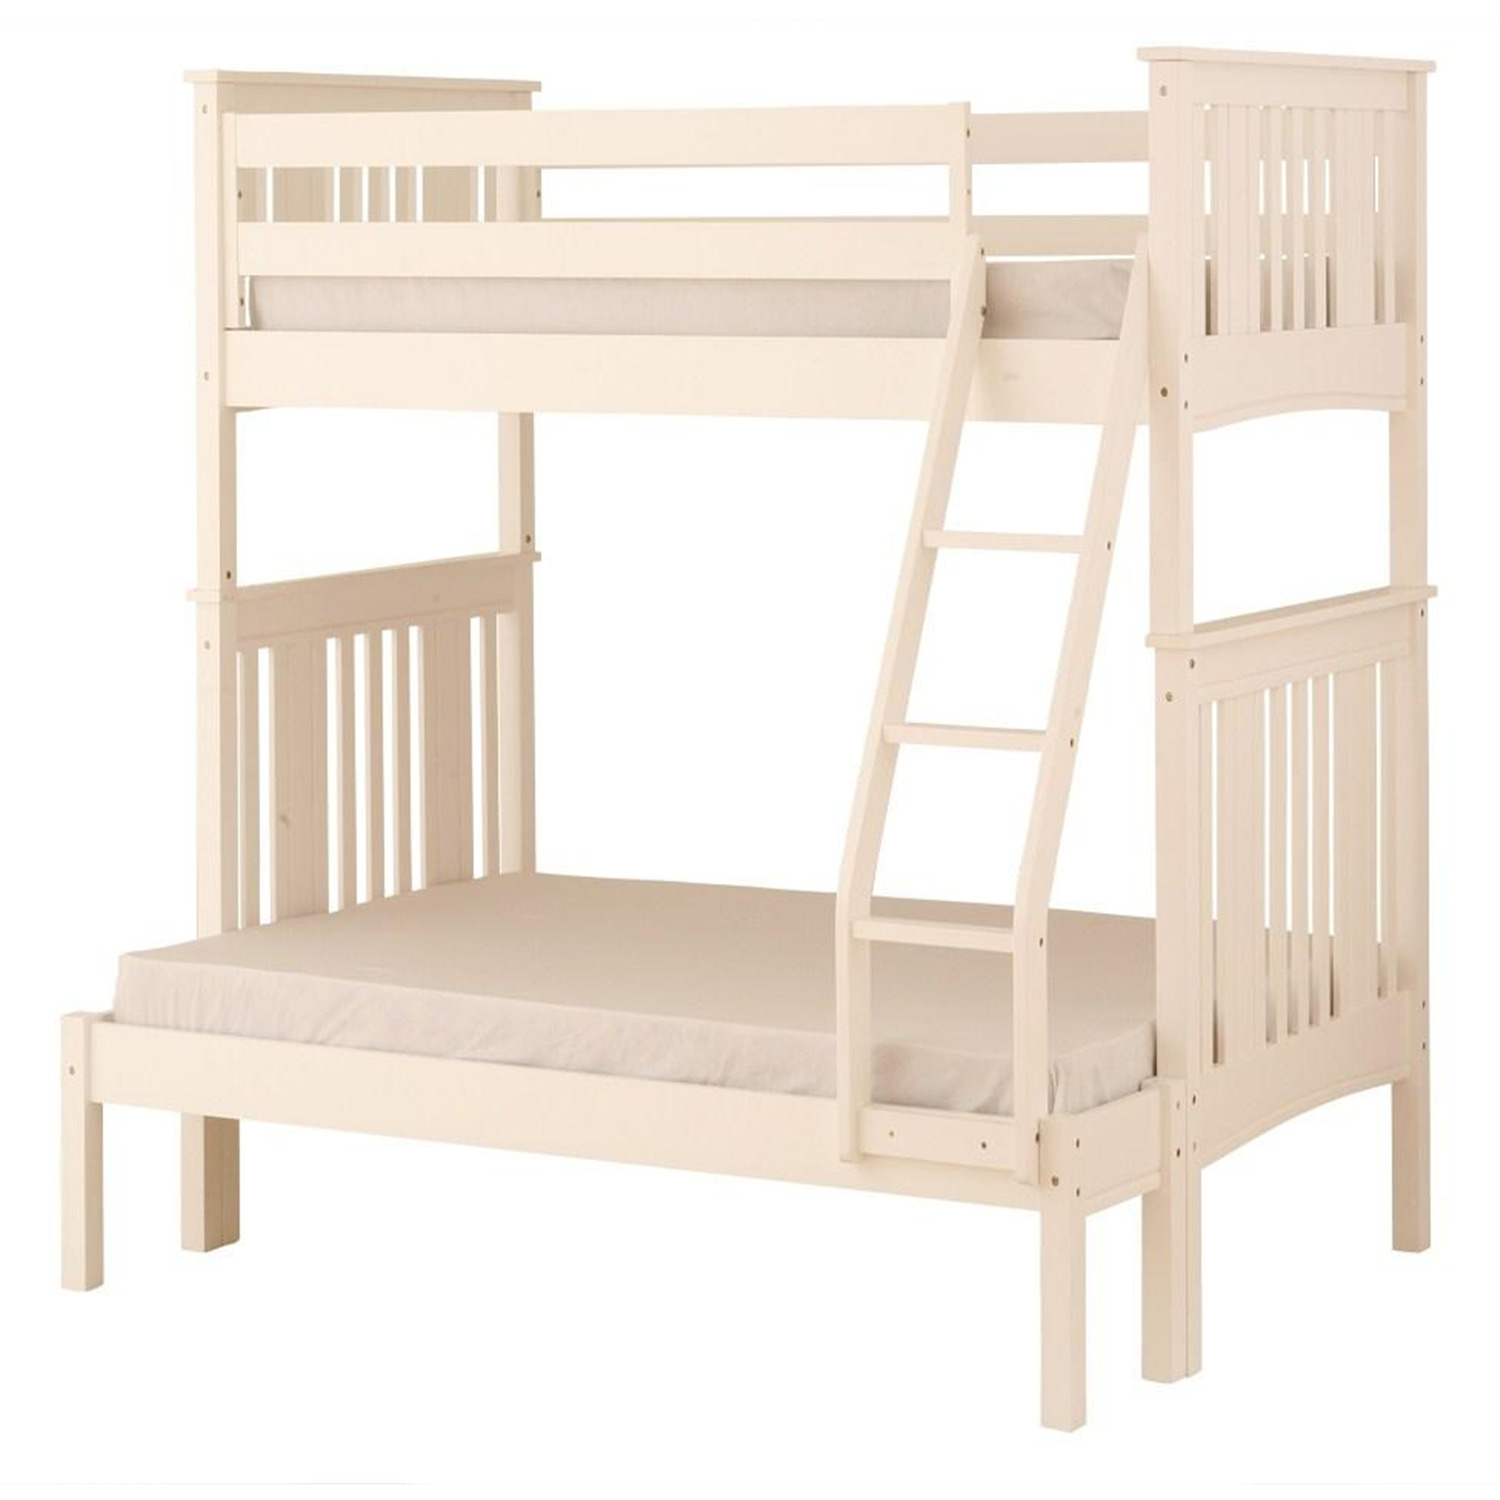 Canwood Canwood Base Camp Twin Over Full Bunk Bed By Oj